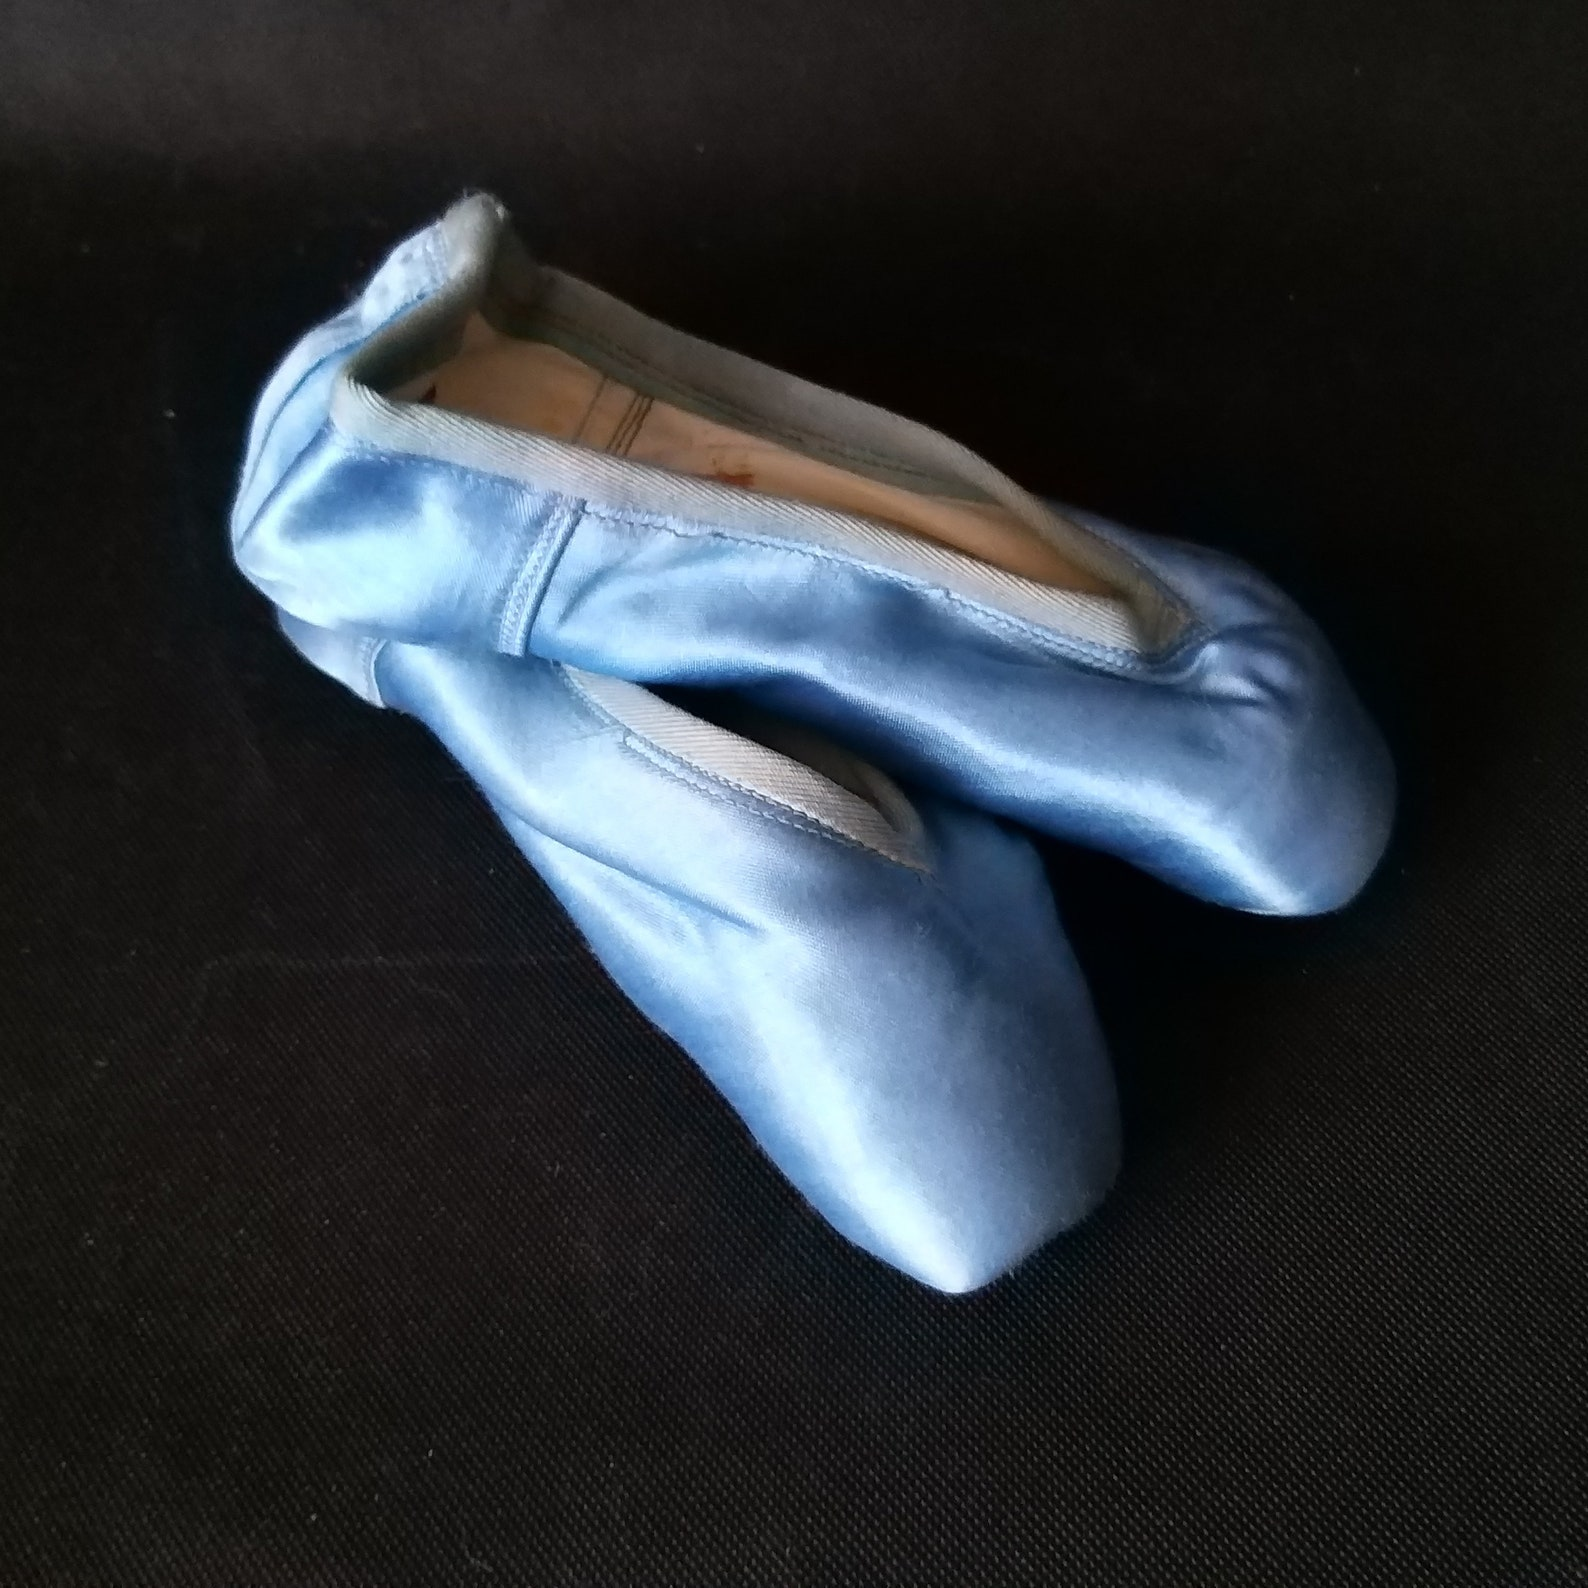 blue satin ballet pointe shoes vintage pair of pointe shoes slippers little girls shabby ballet shoes french romantic décor vint